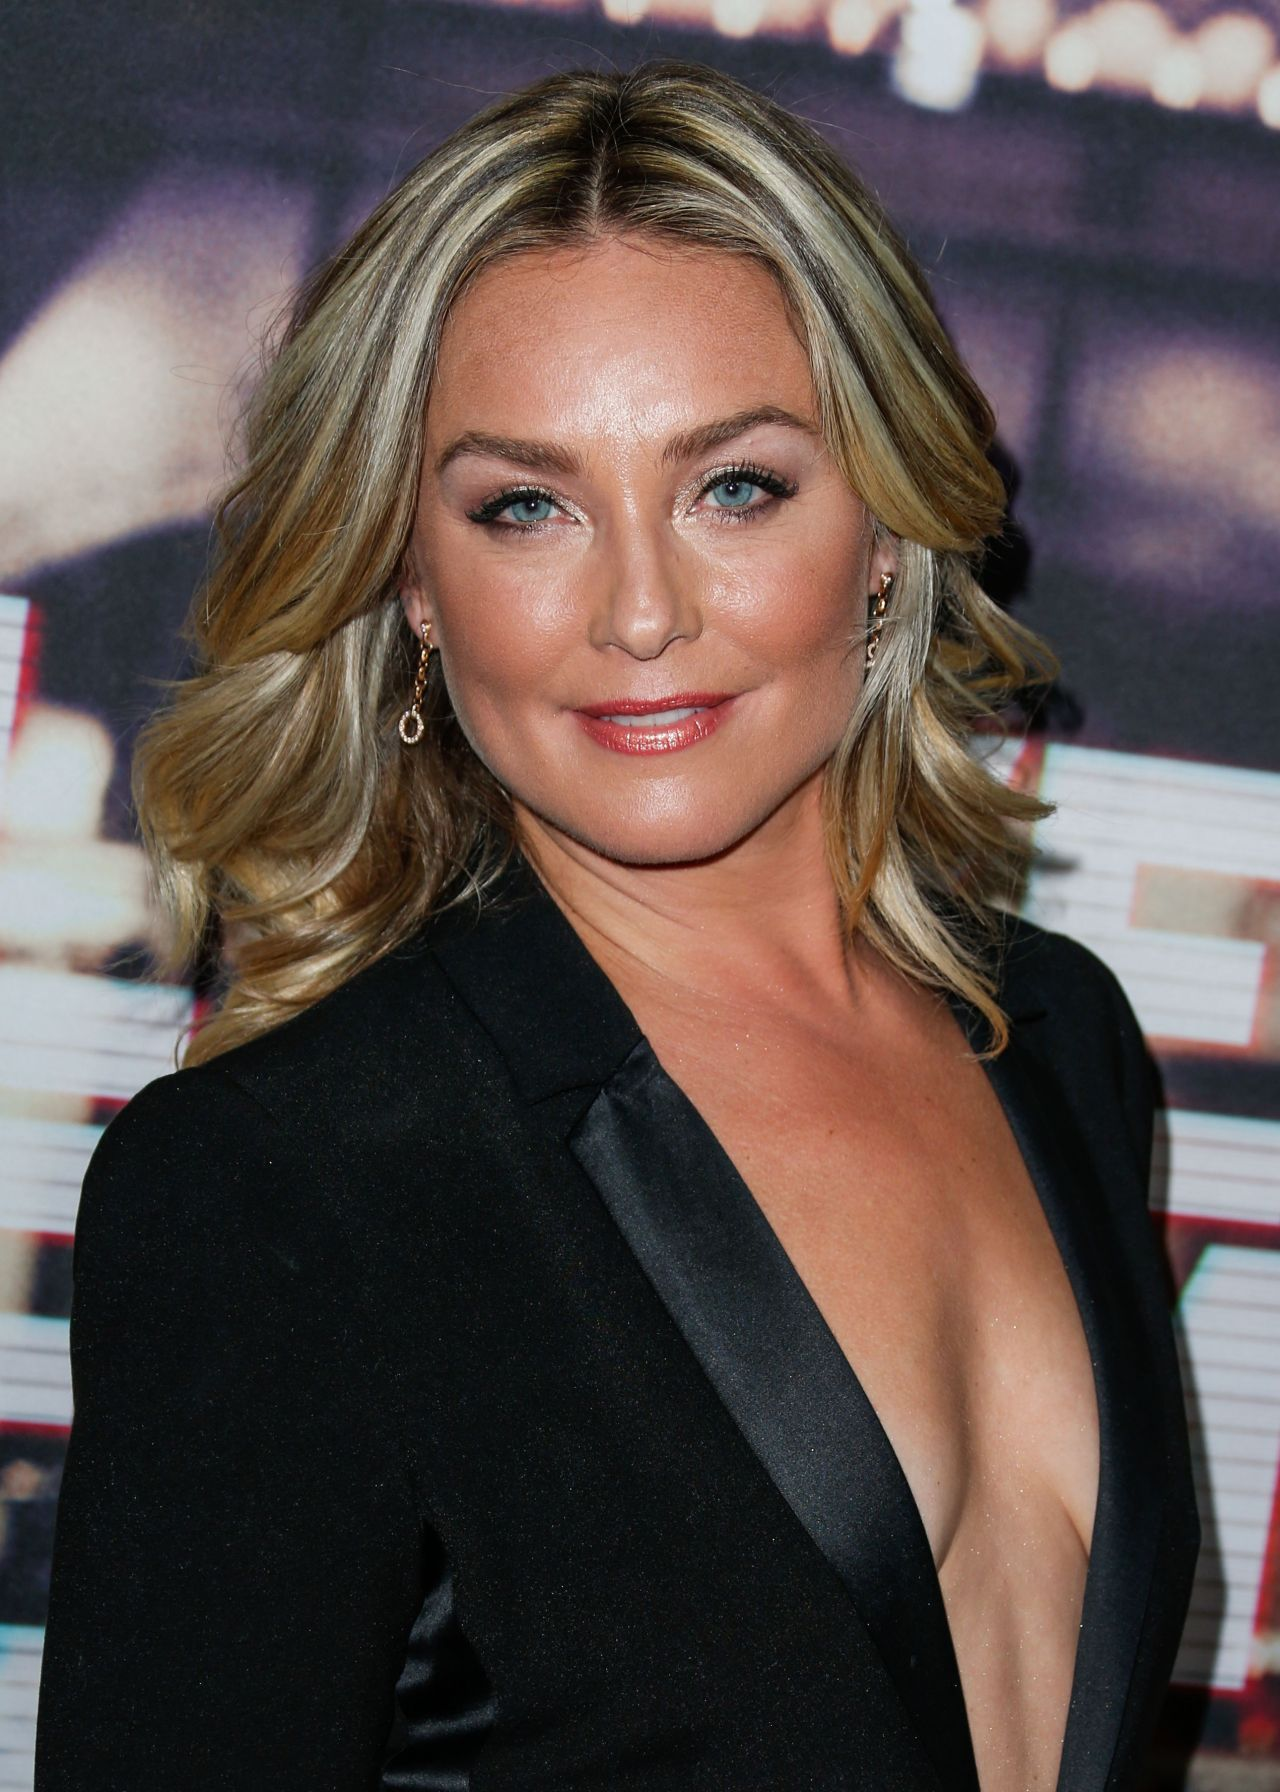 Elisabeth Rohm Live From New York Premiere In Los Angeles